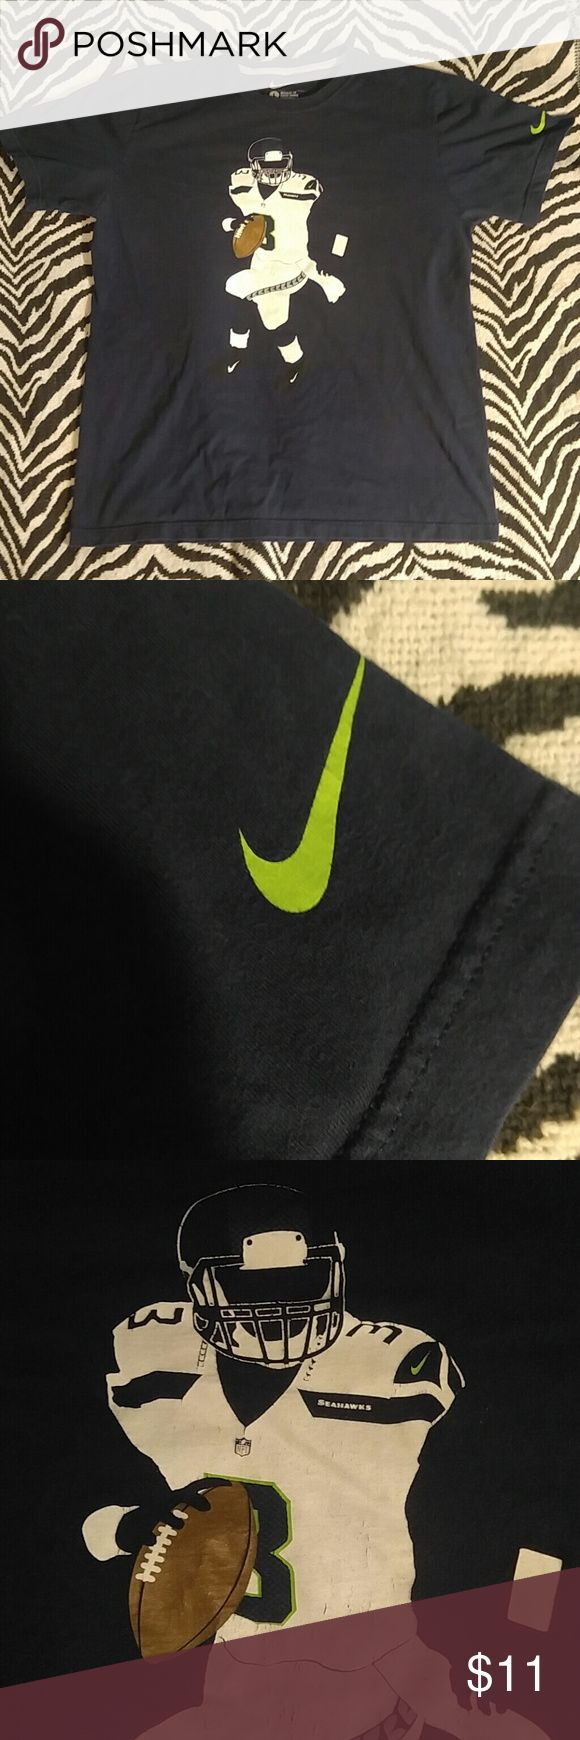 Nike Seattle Seahawks Russell Wilson player tee L Awesome Nike tee featuring a graphic of Super Bowl winning Seahawks QB Russell Wilson. Item has some very light fade and super light cracking to logo but overall in great shape. Super comfy and functional, a must have for any fan! Nike Shirts Tees - Short Sleeve